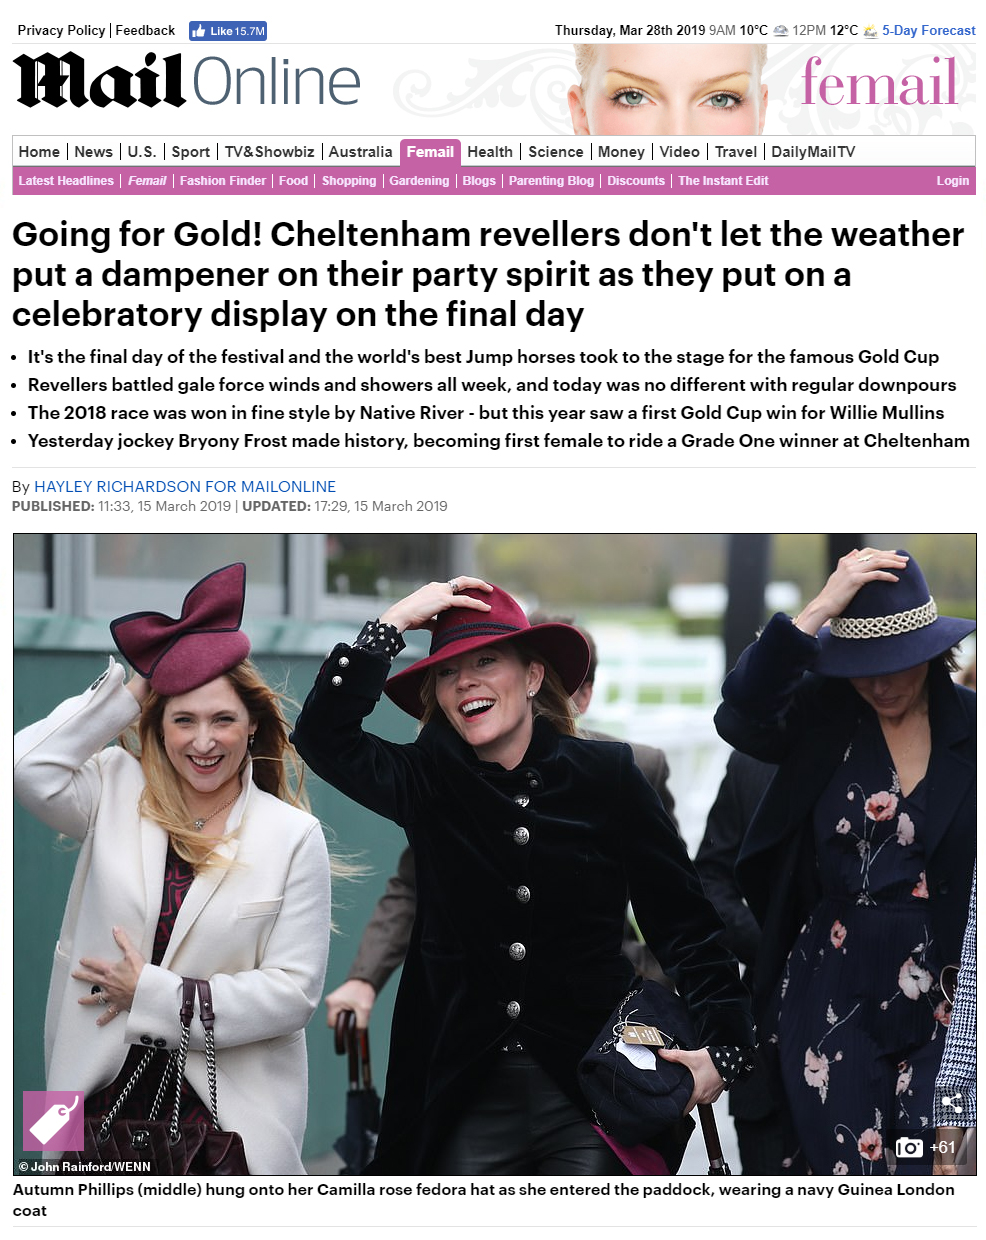 Daily Mail - Autumn Phillips & Di Dougherty - 15th march 2019  (Dusk Fedora Burgundy & Delphinius Fedora)